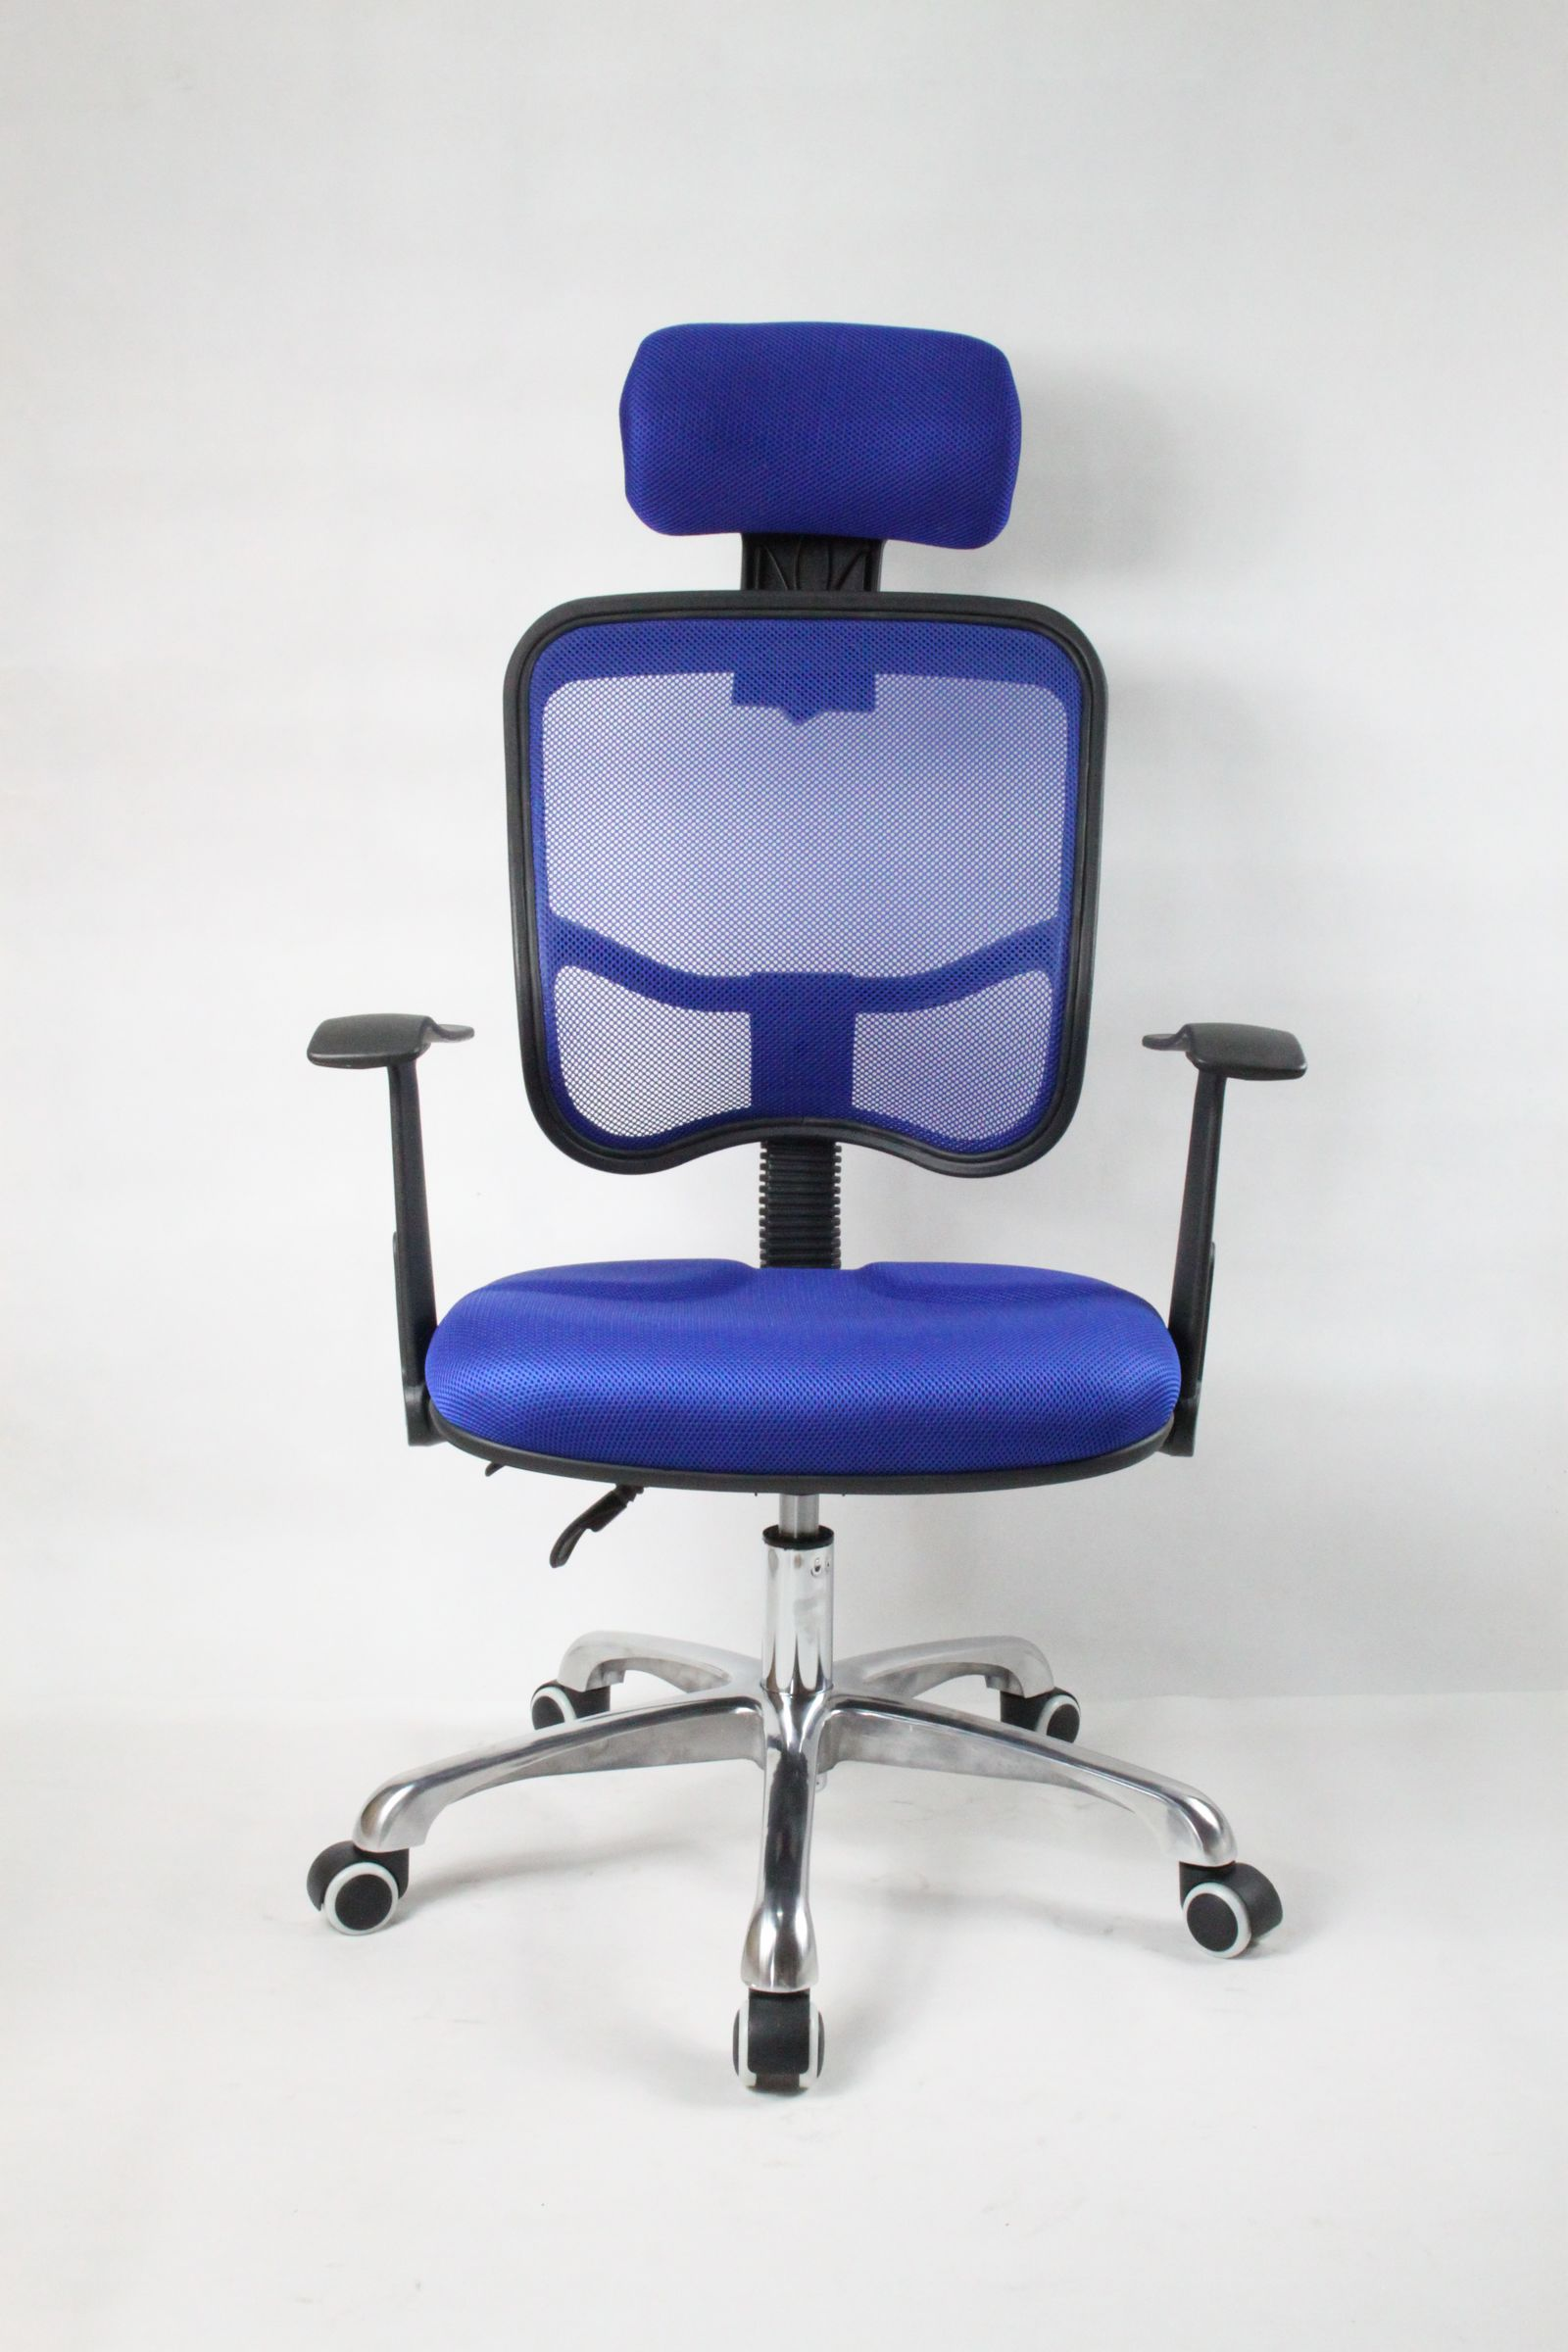 Blue Computer Chair Designer Adjustable Reclining Executive Office Computer